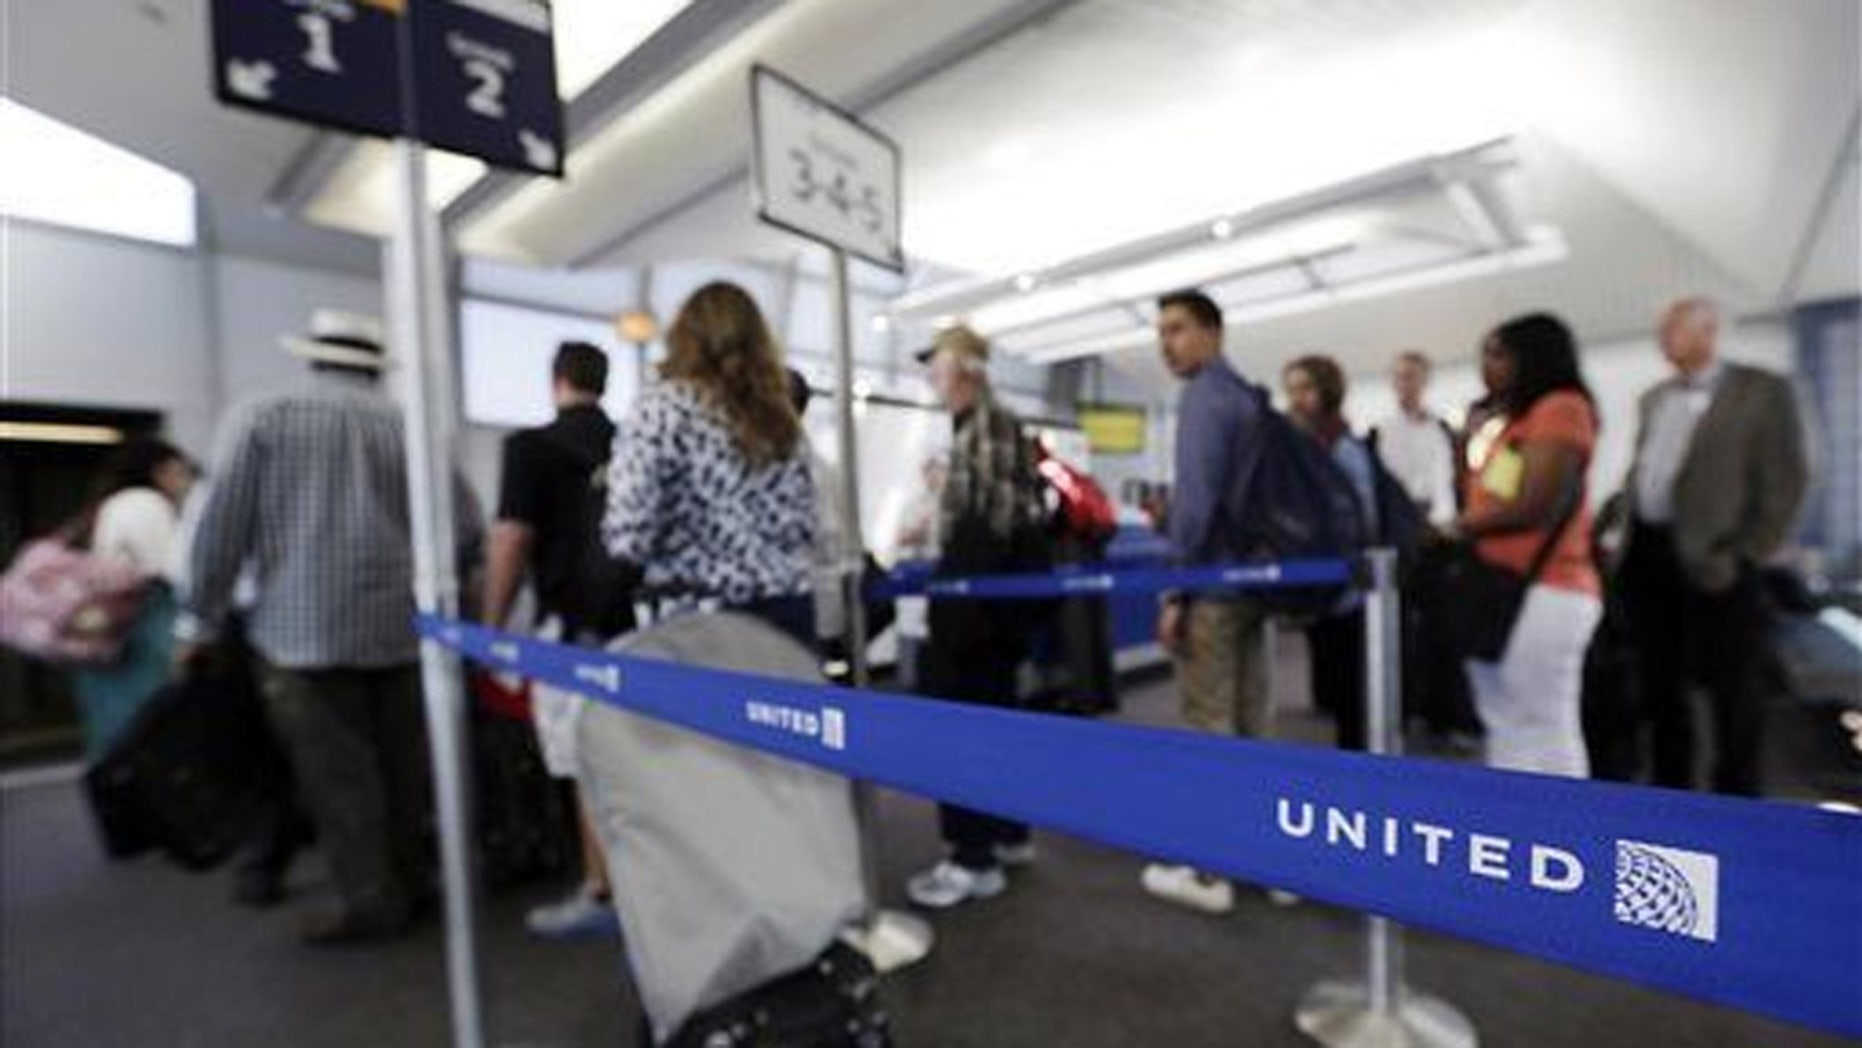 United was the last holdout. It has forced families to board with everybody else since it revamped its boarding process in April 2012.